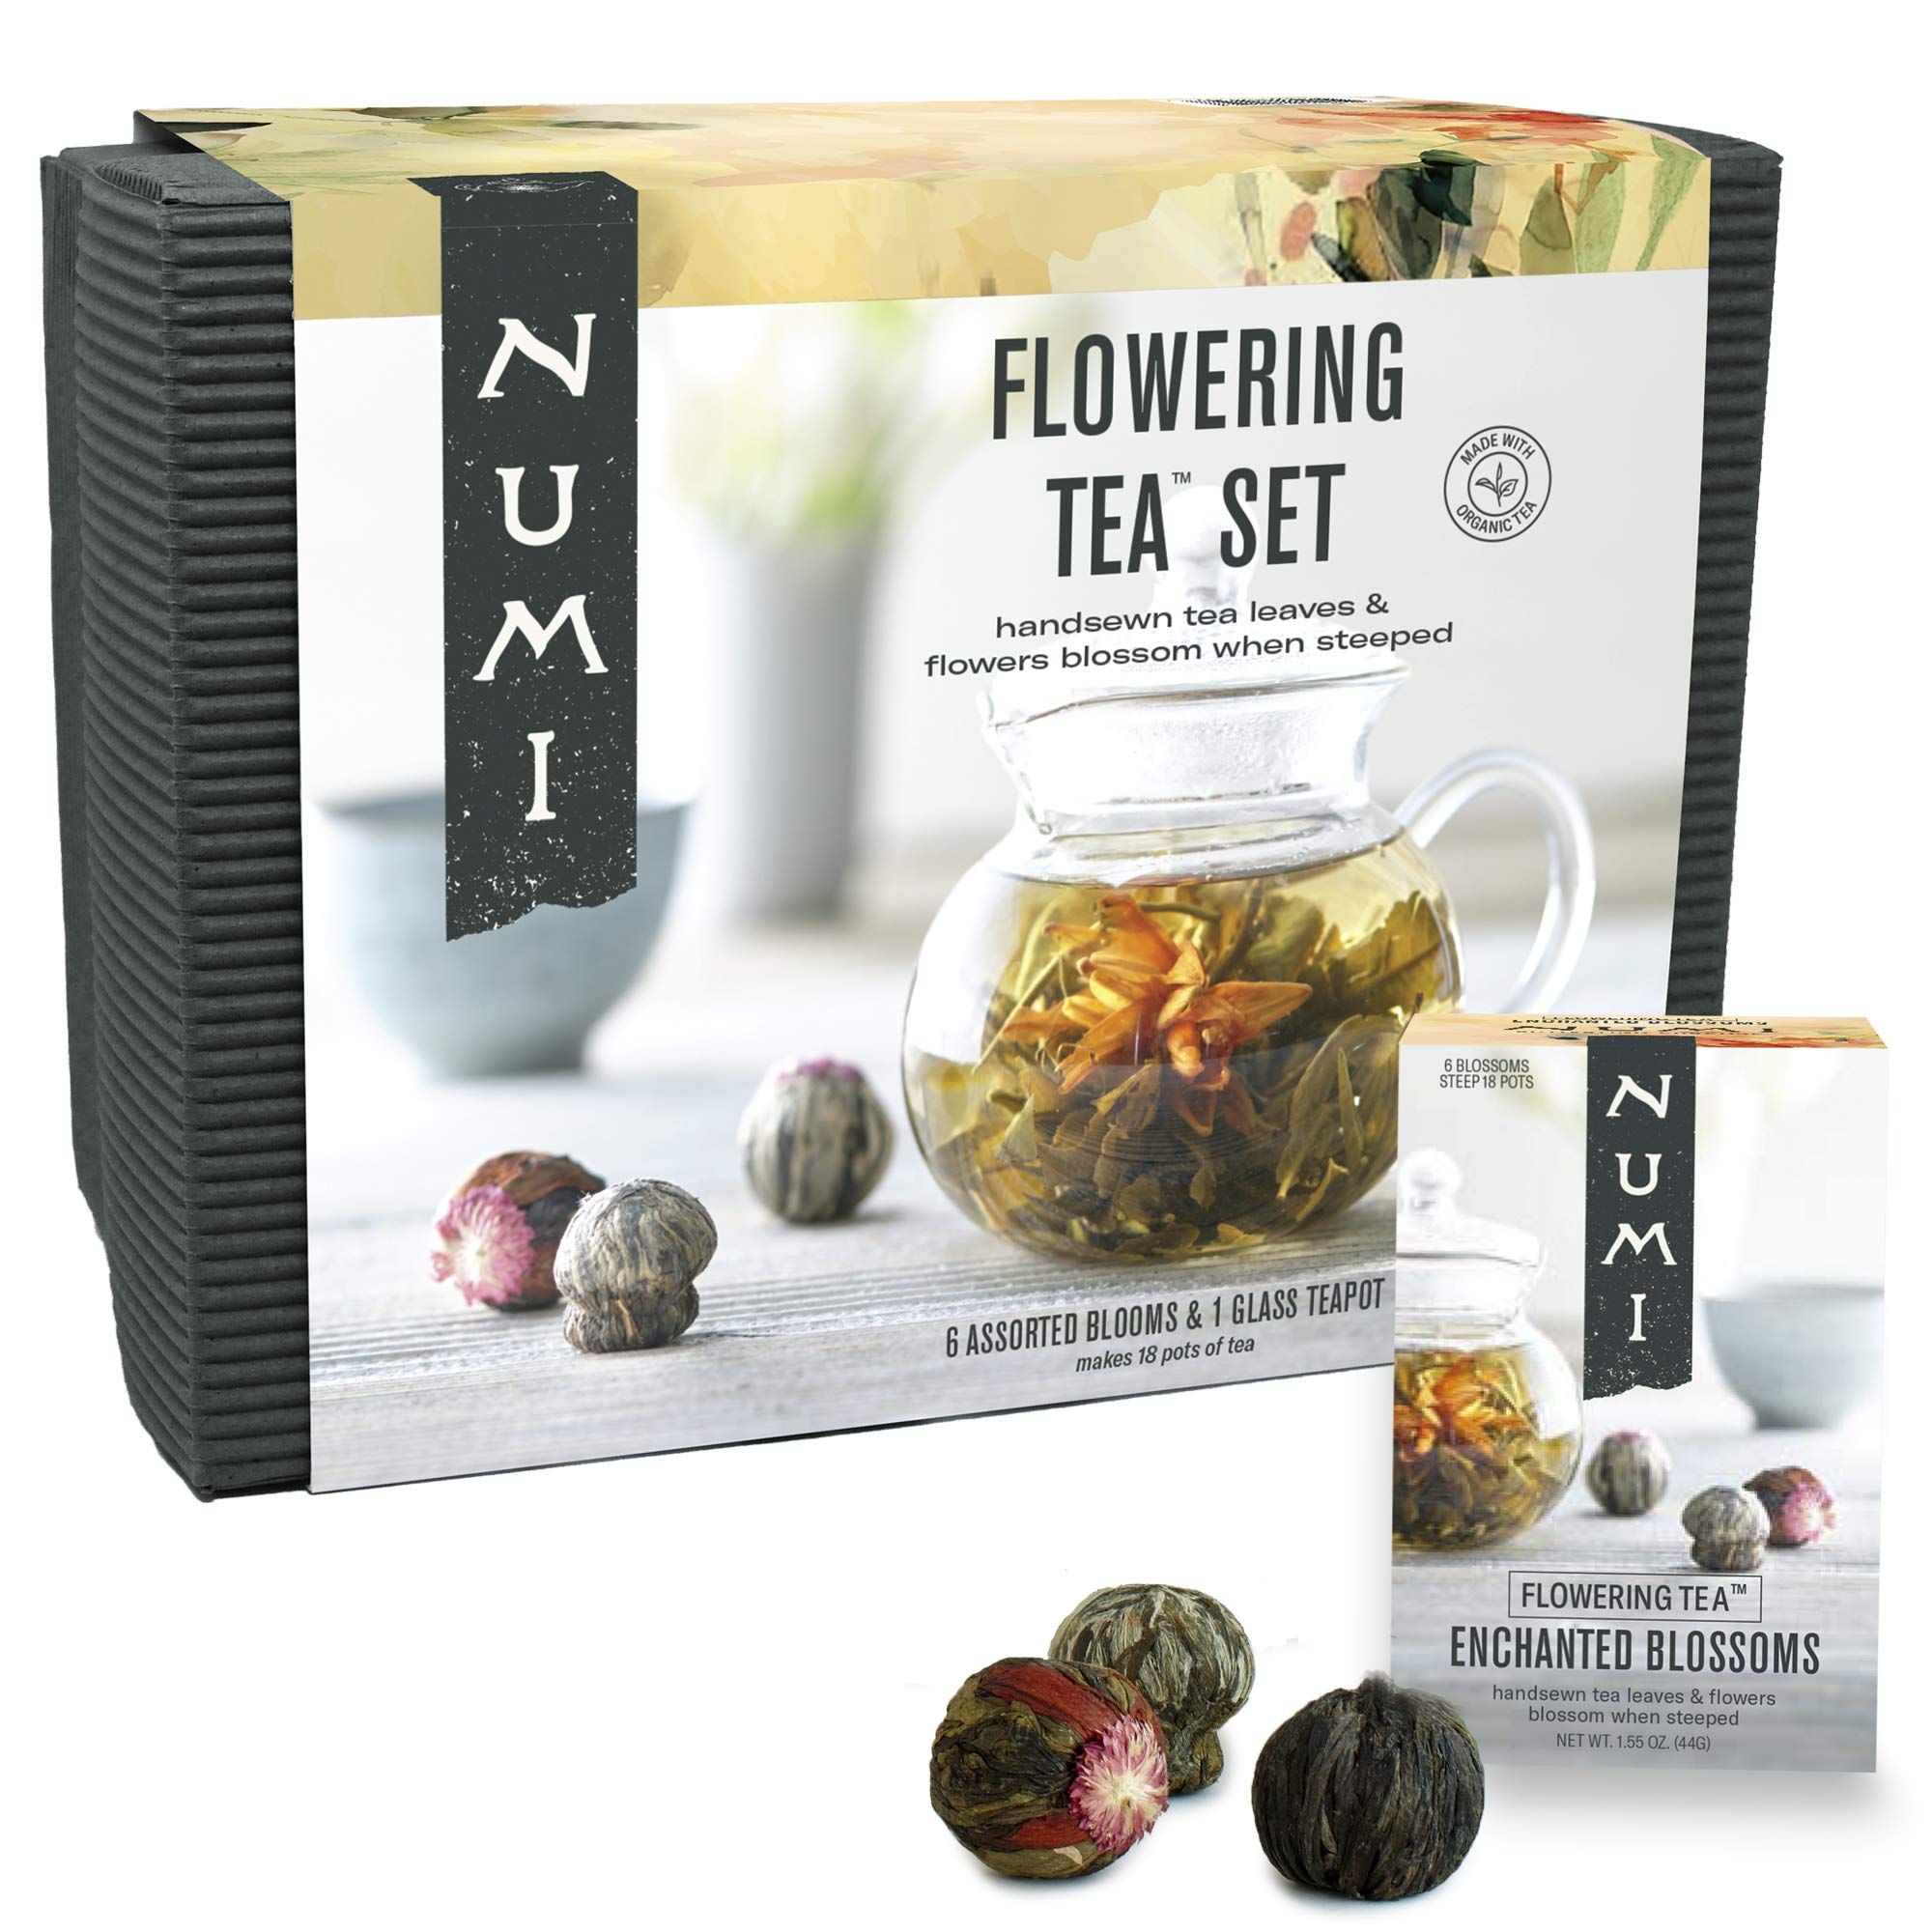 Numi Organic Tea Flowering Tea Gift Set, 6 Tea Blossoms with 16 Ounce Glass Teapot (Packaging May Vary)